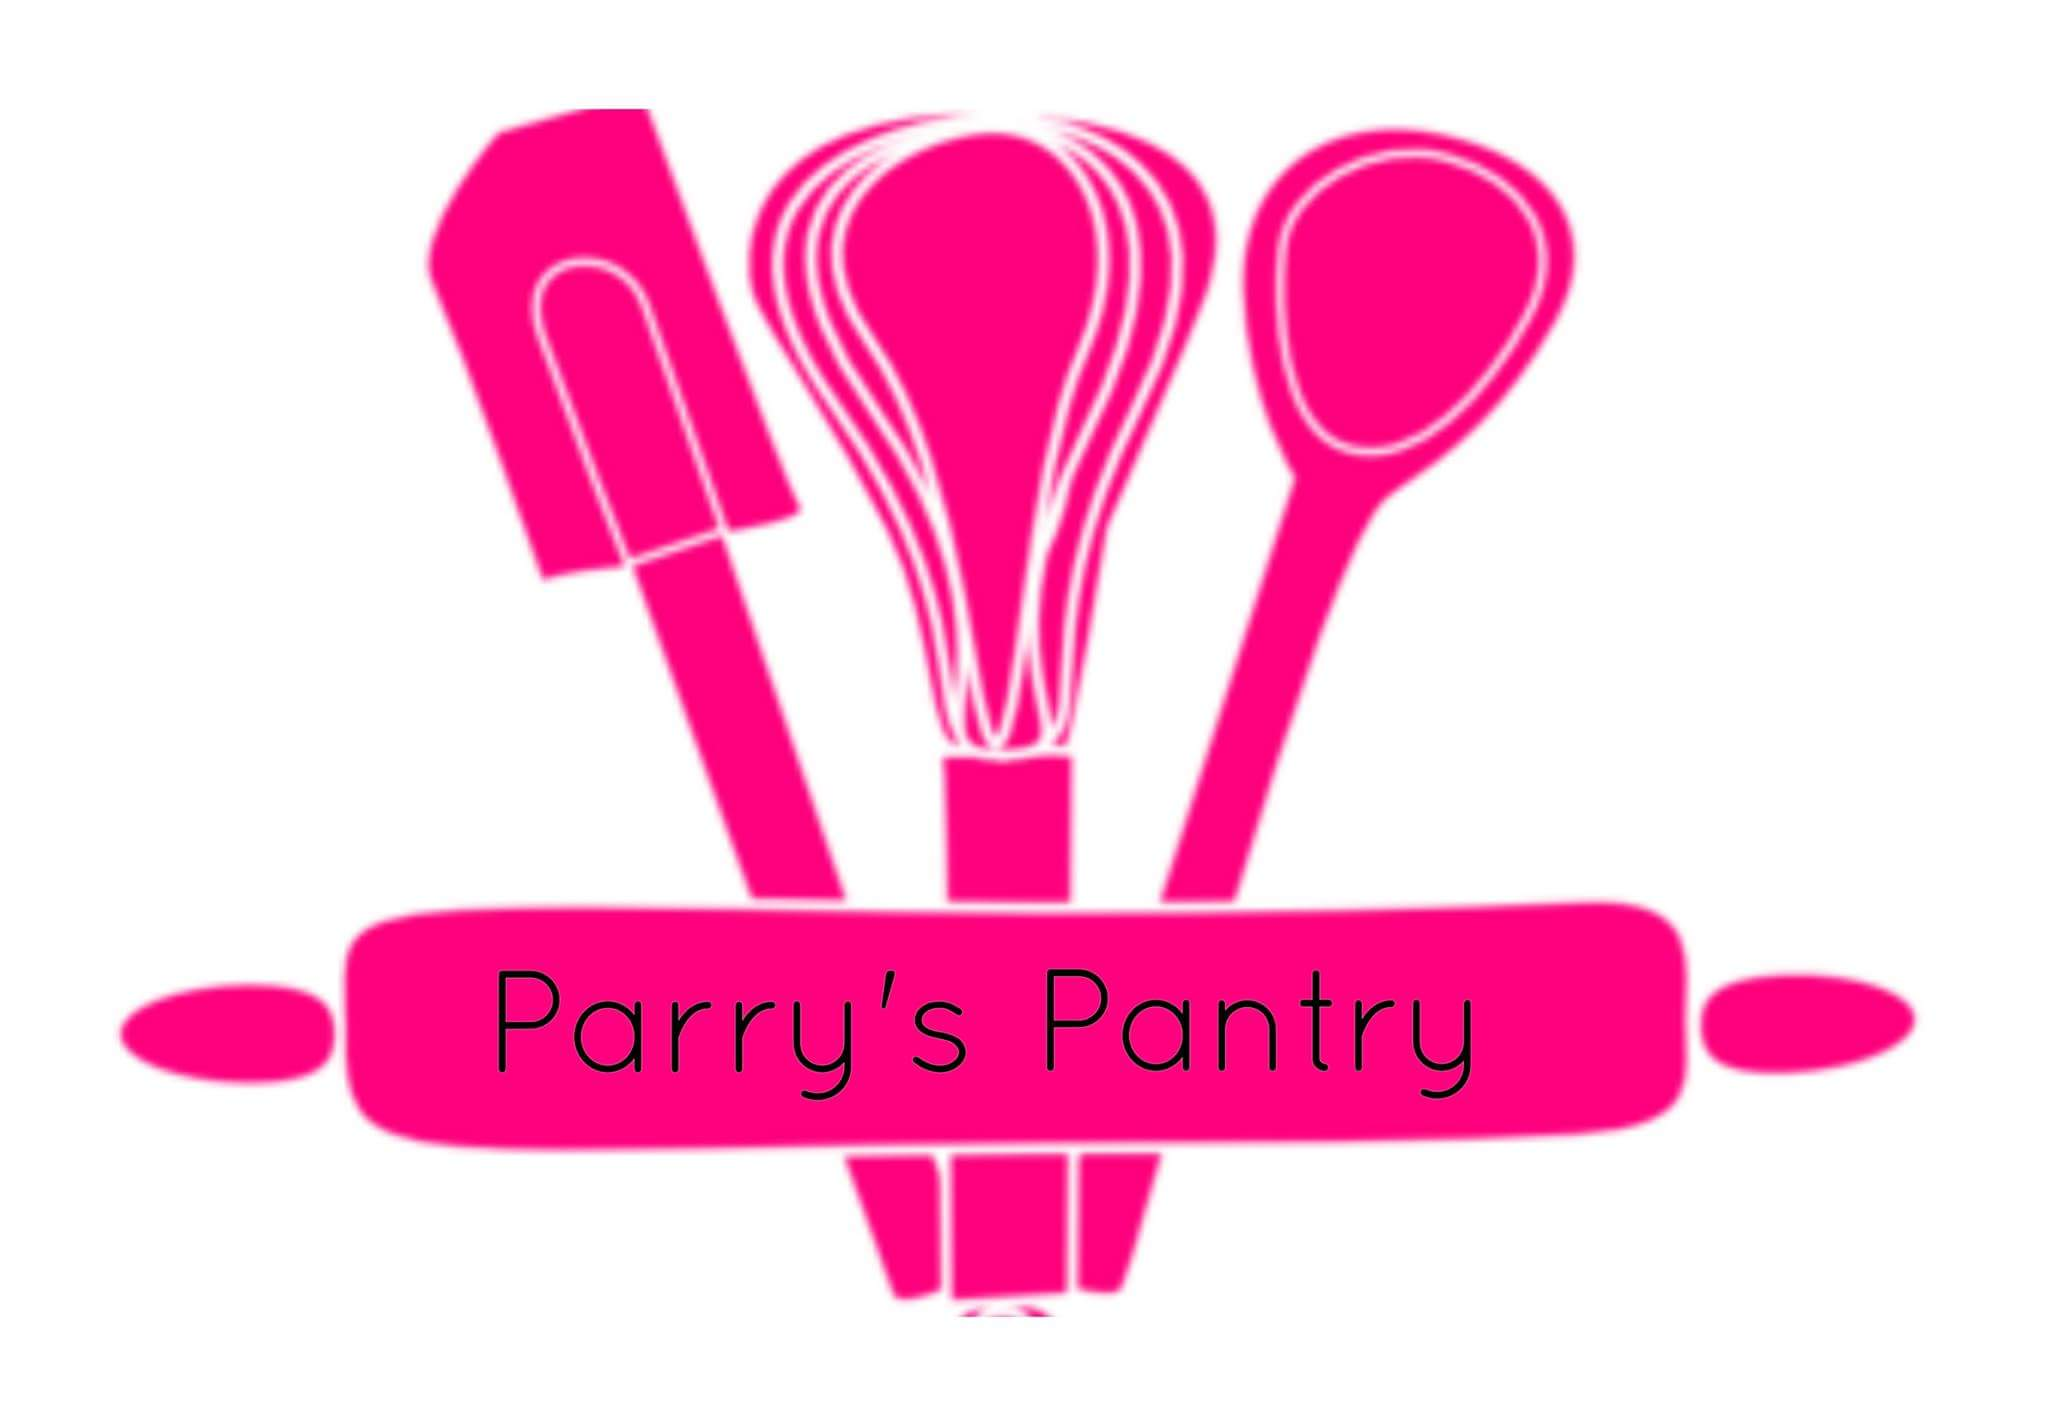 Parry's Pantry